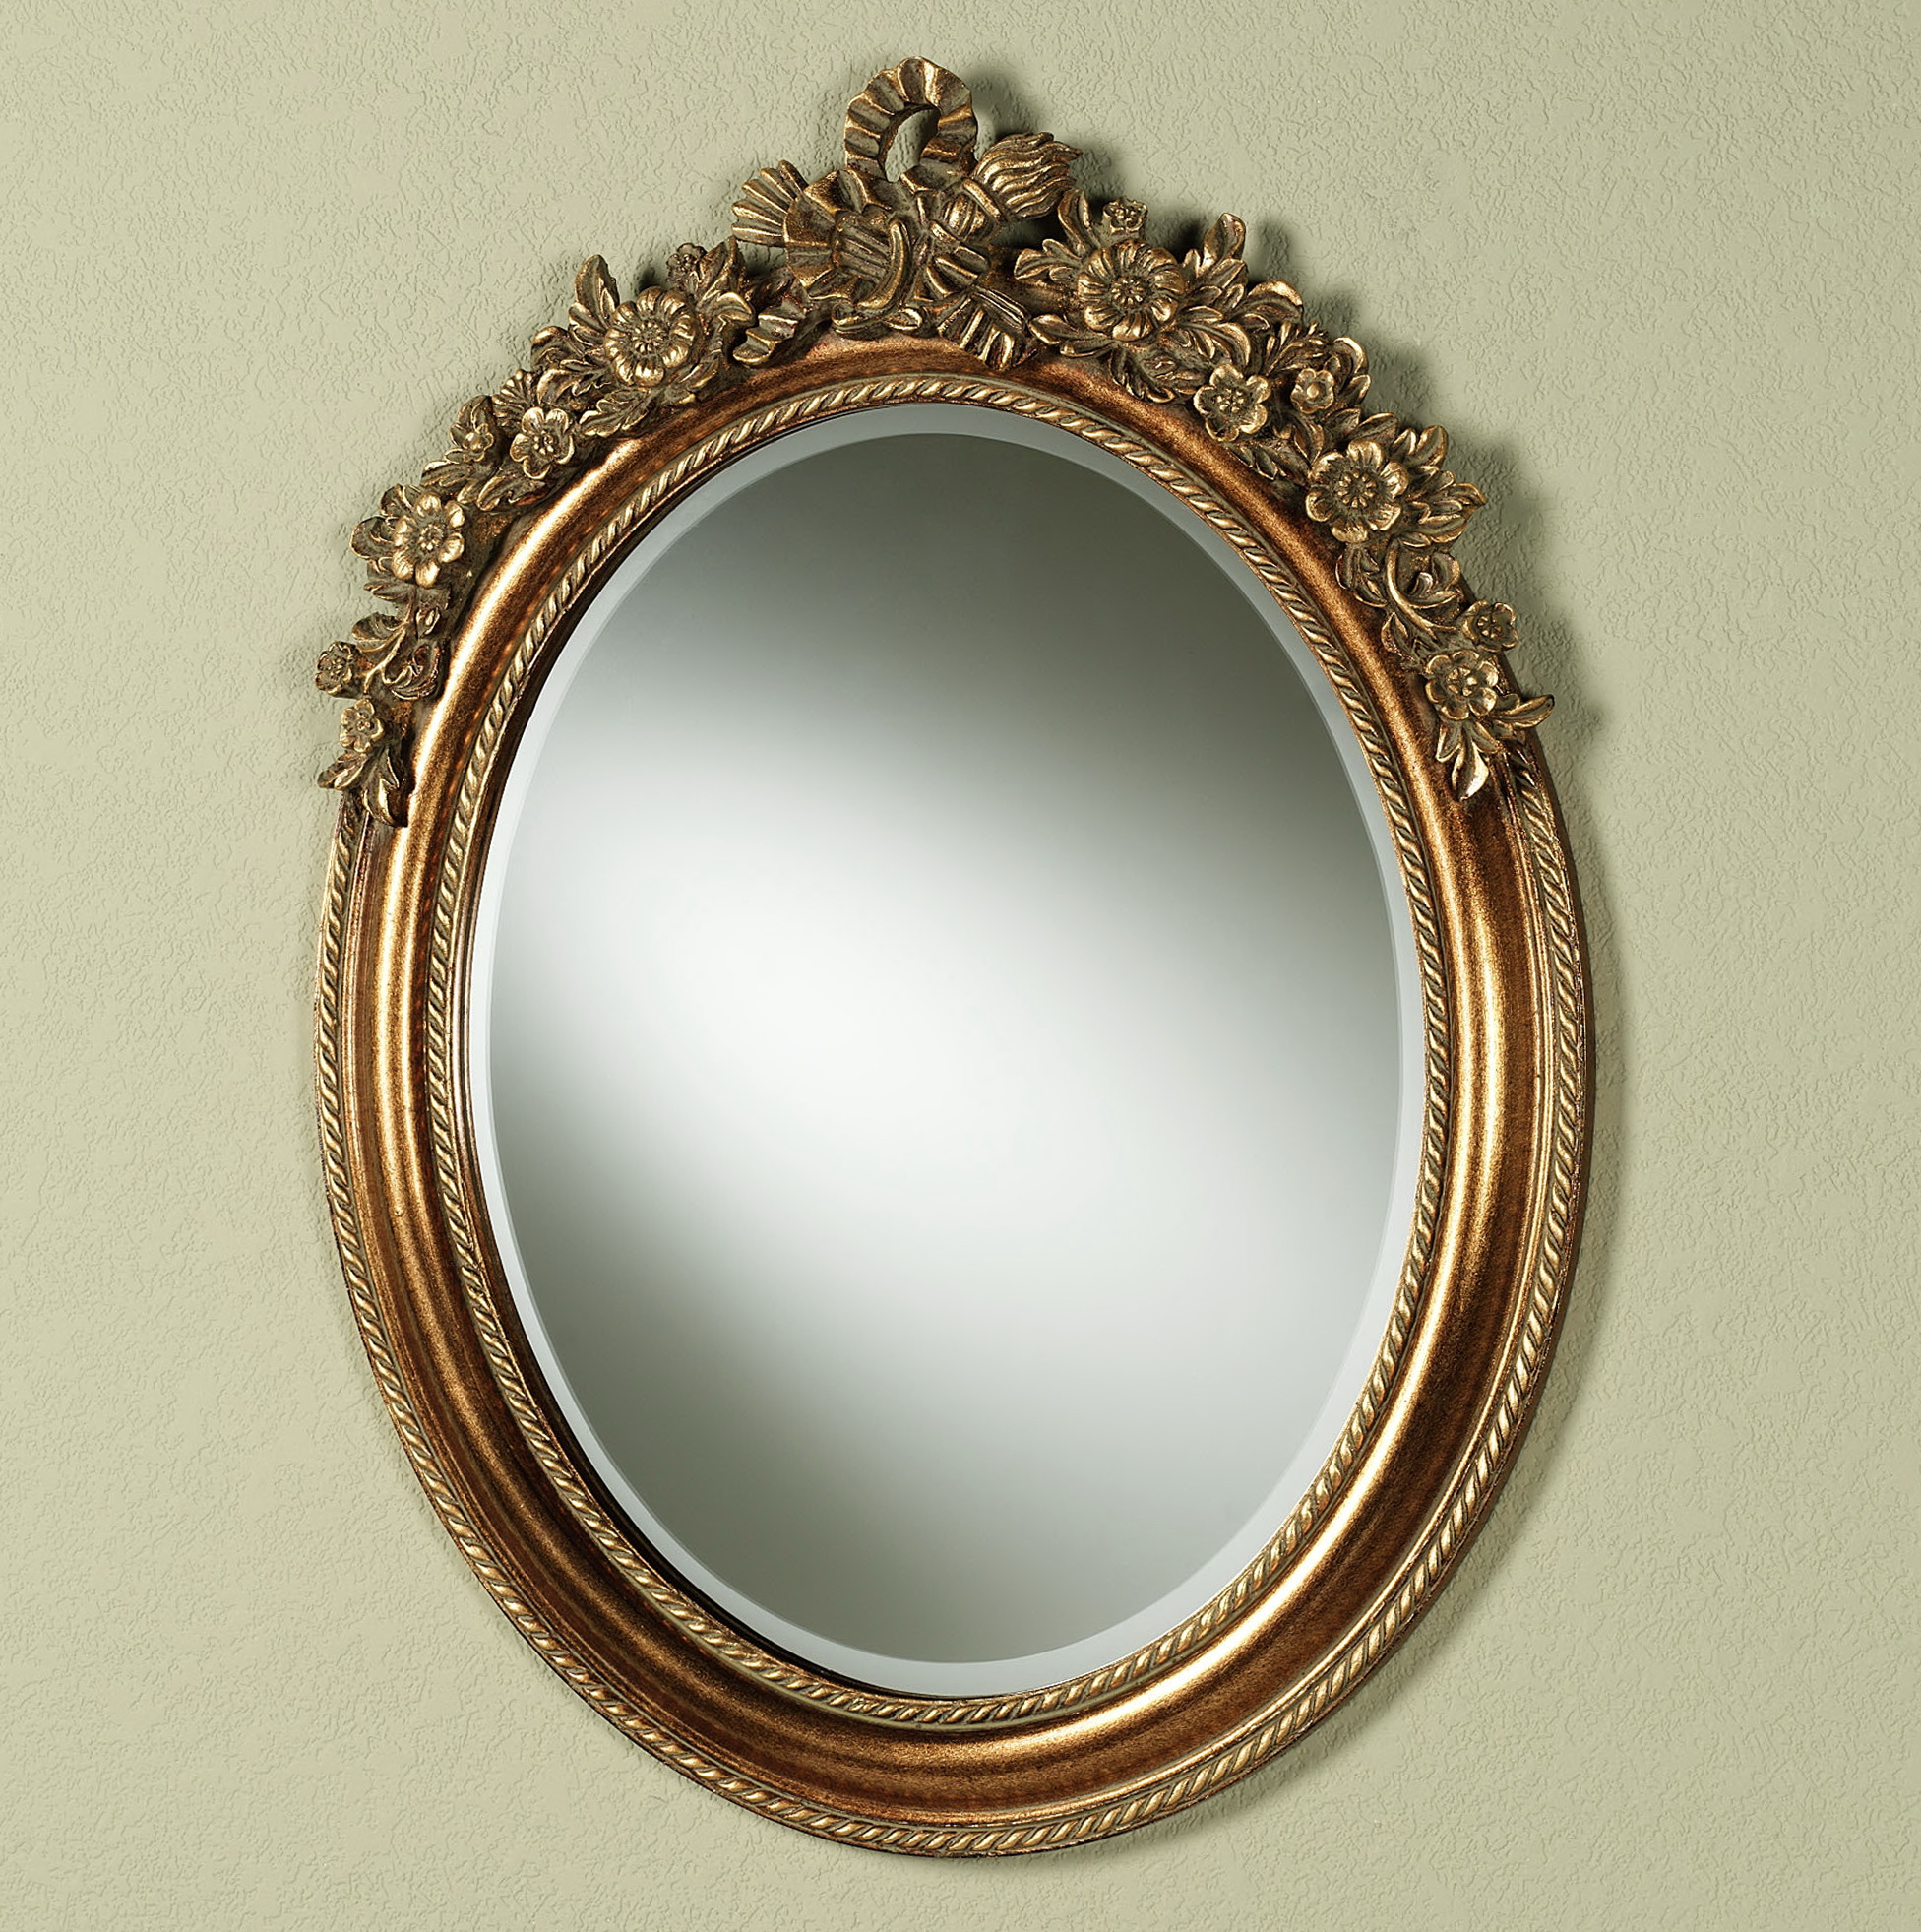 baroque oval wall mirror home design ideas